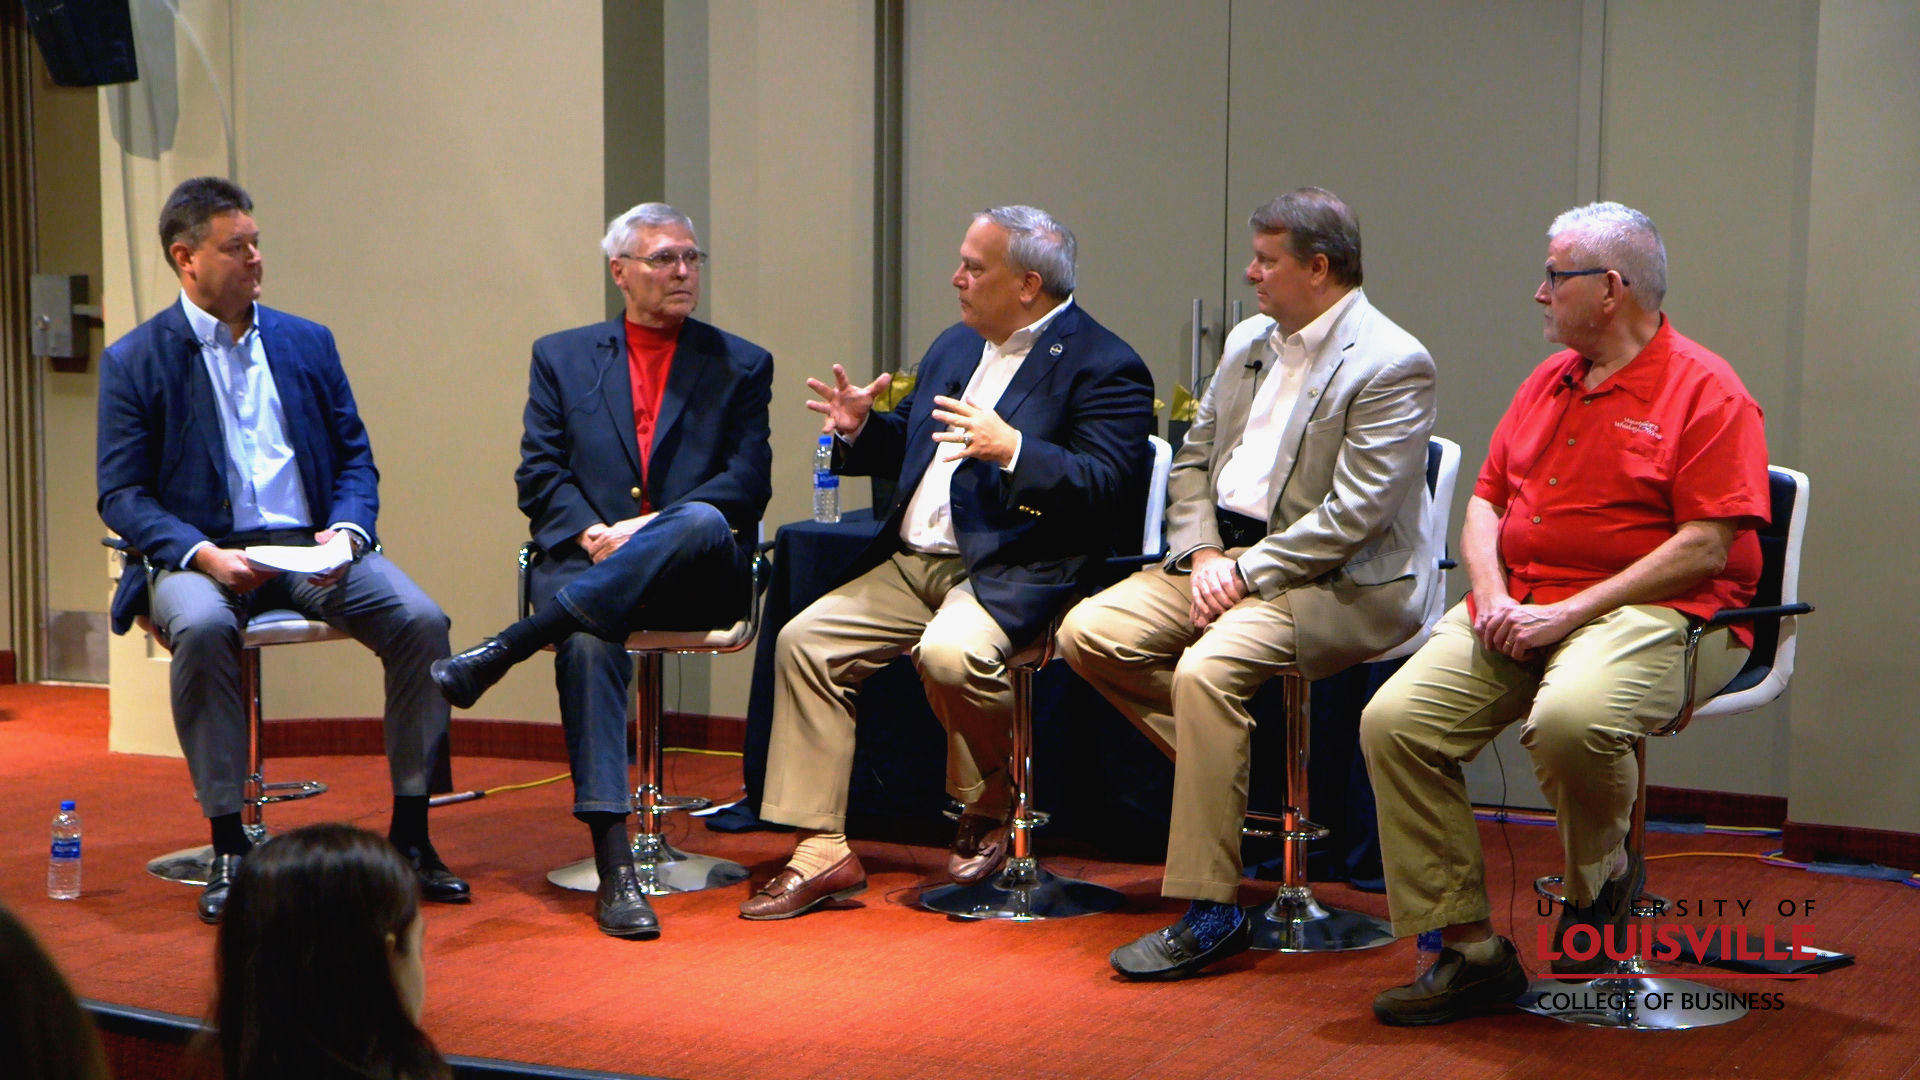 Five older businessmen discussing the state of the bourbon industry.